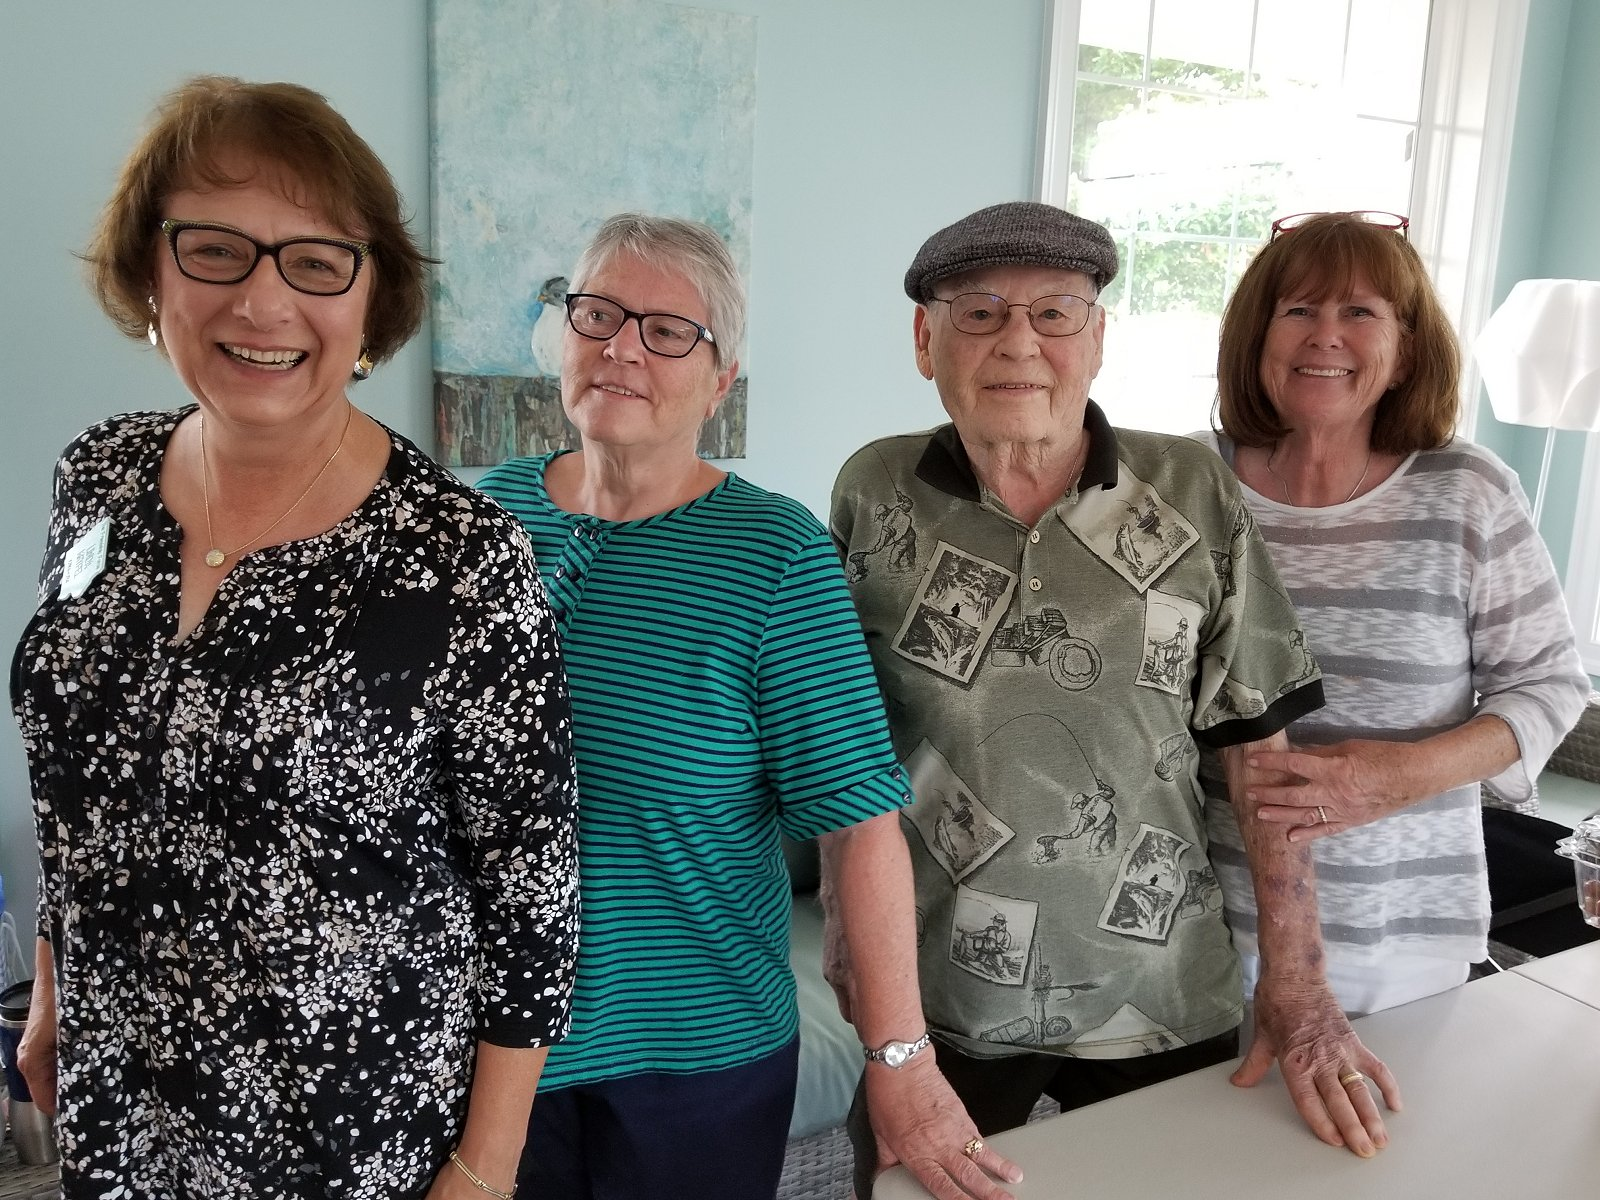 2018 Outbound Journey to FF Central Virginia - June 13-18 - Linda, Pat & the Birdsals